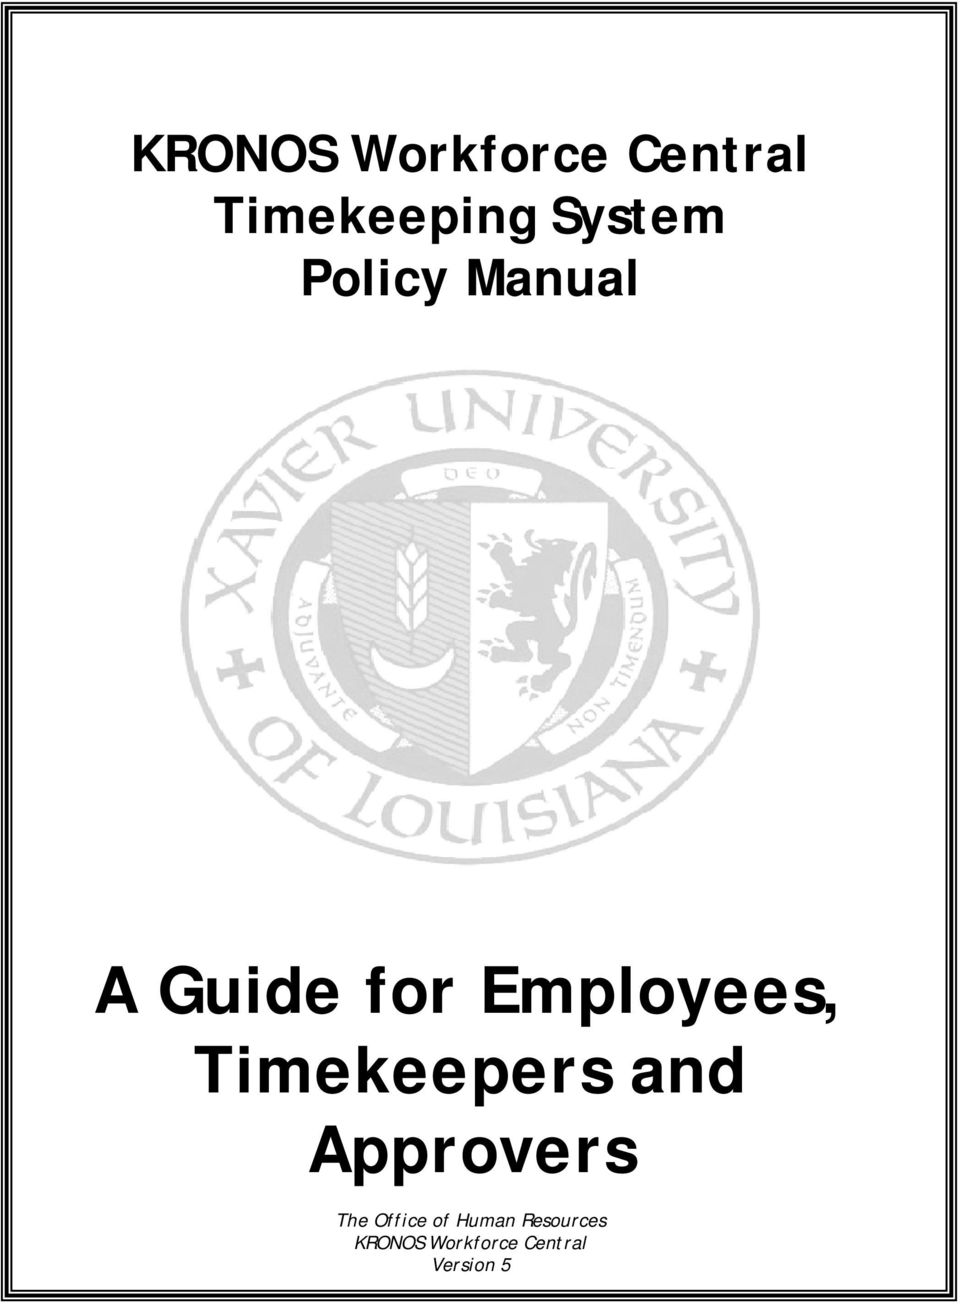 KRONOS Workforce Central Timekeeping System Policy Manual